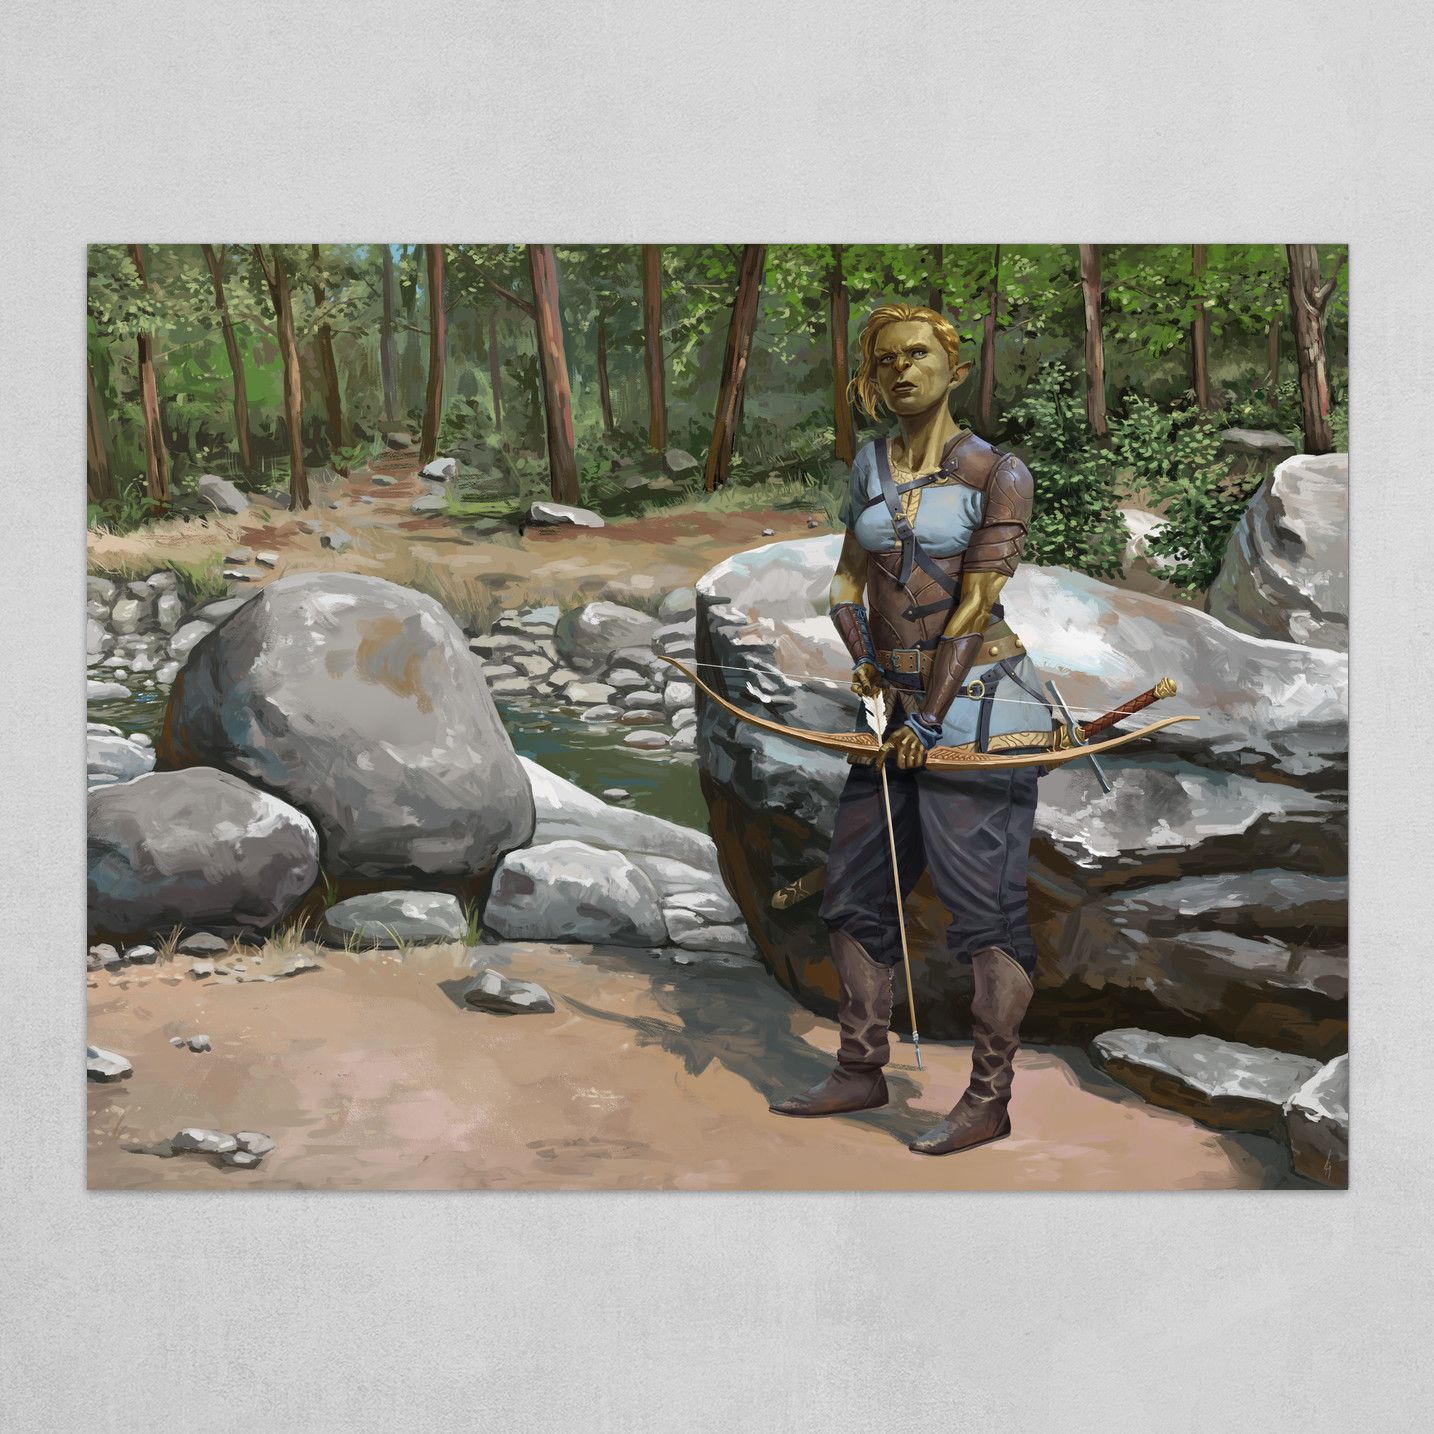 Archer by the river